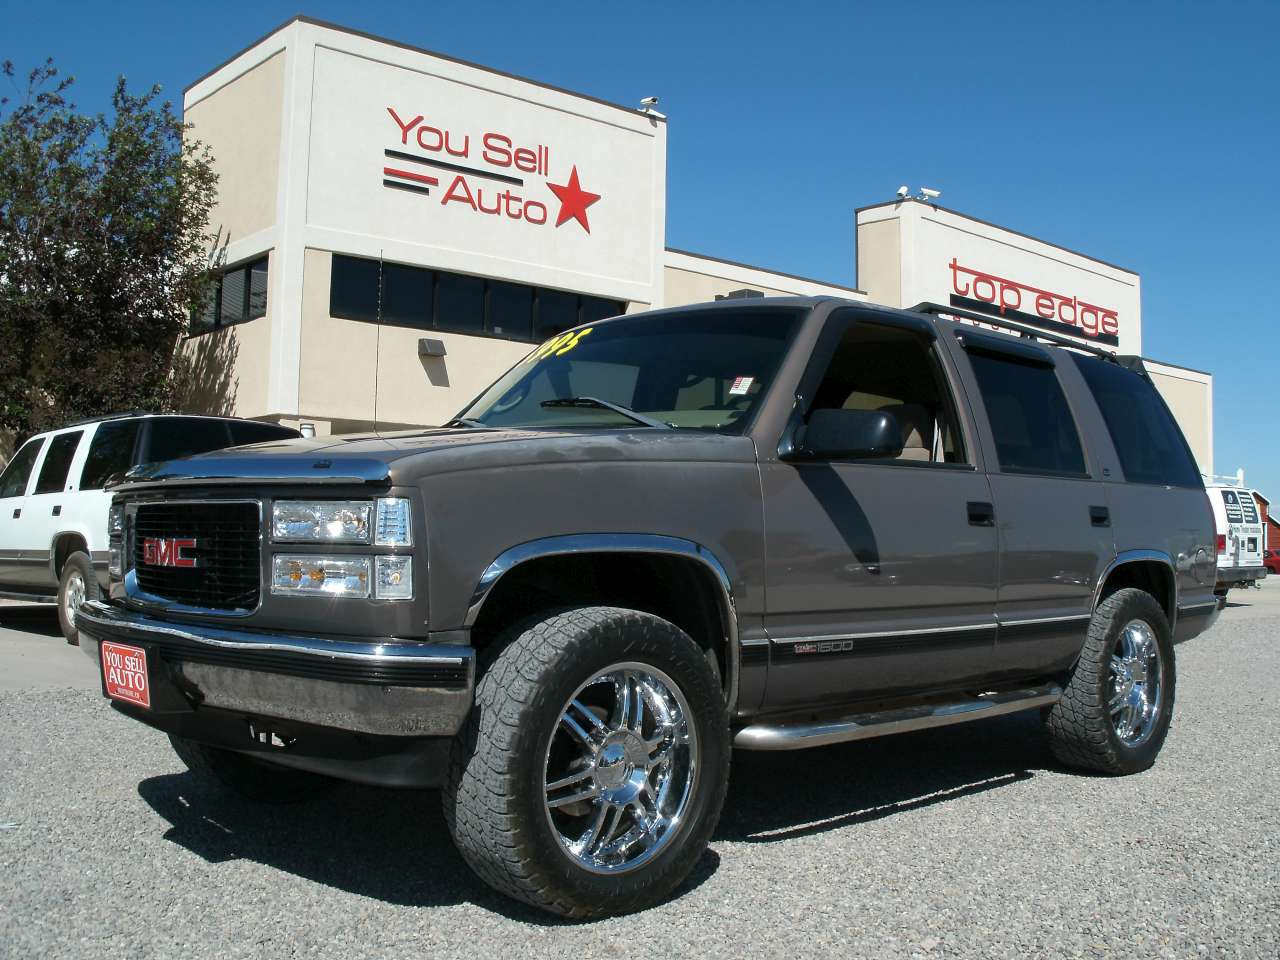 you sell auto 1998 gmc yukon 1500 sle 4x4 you sell auto